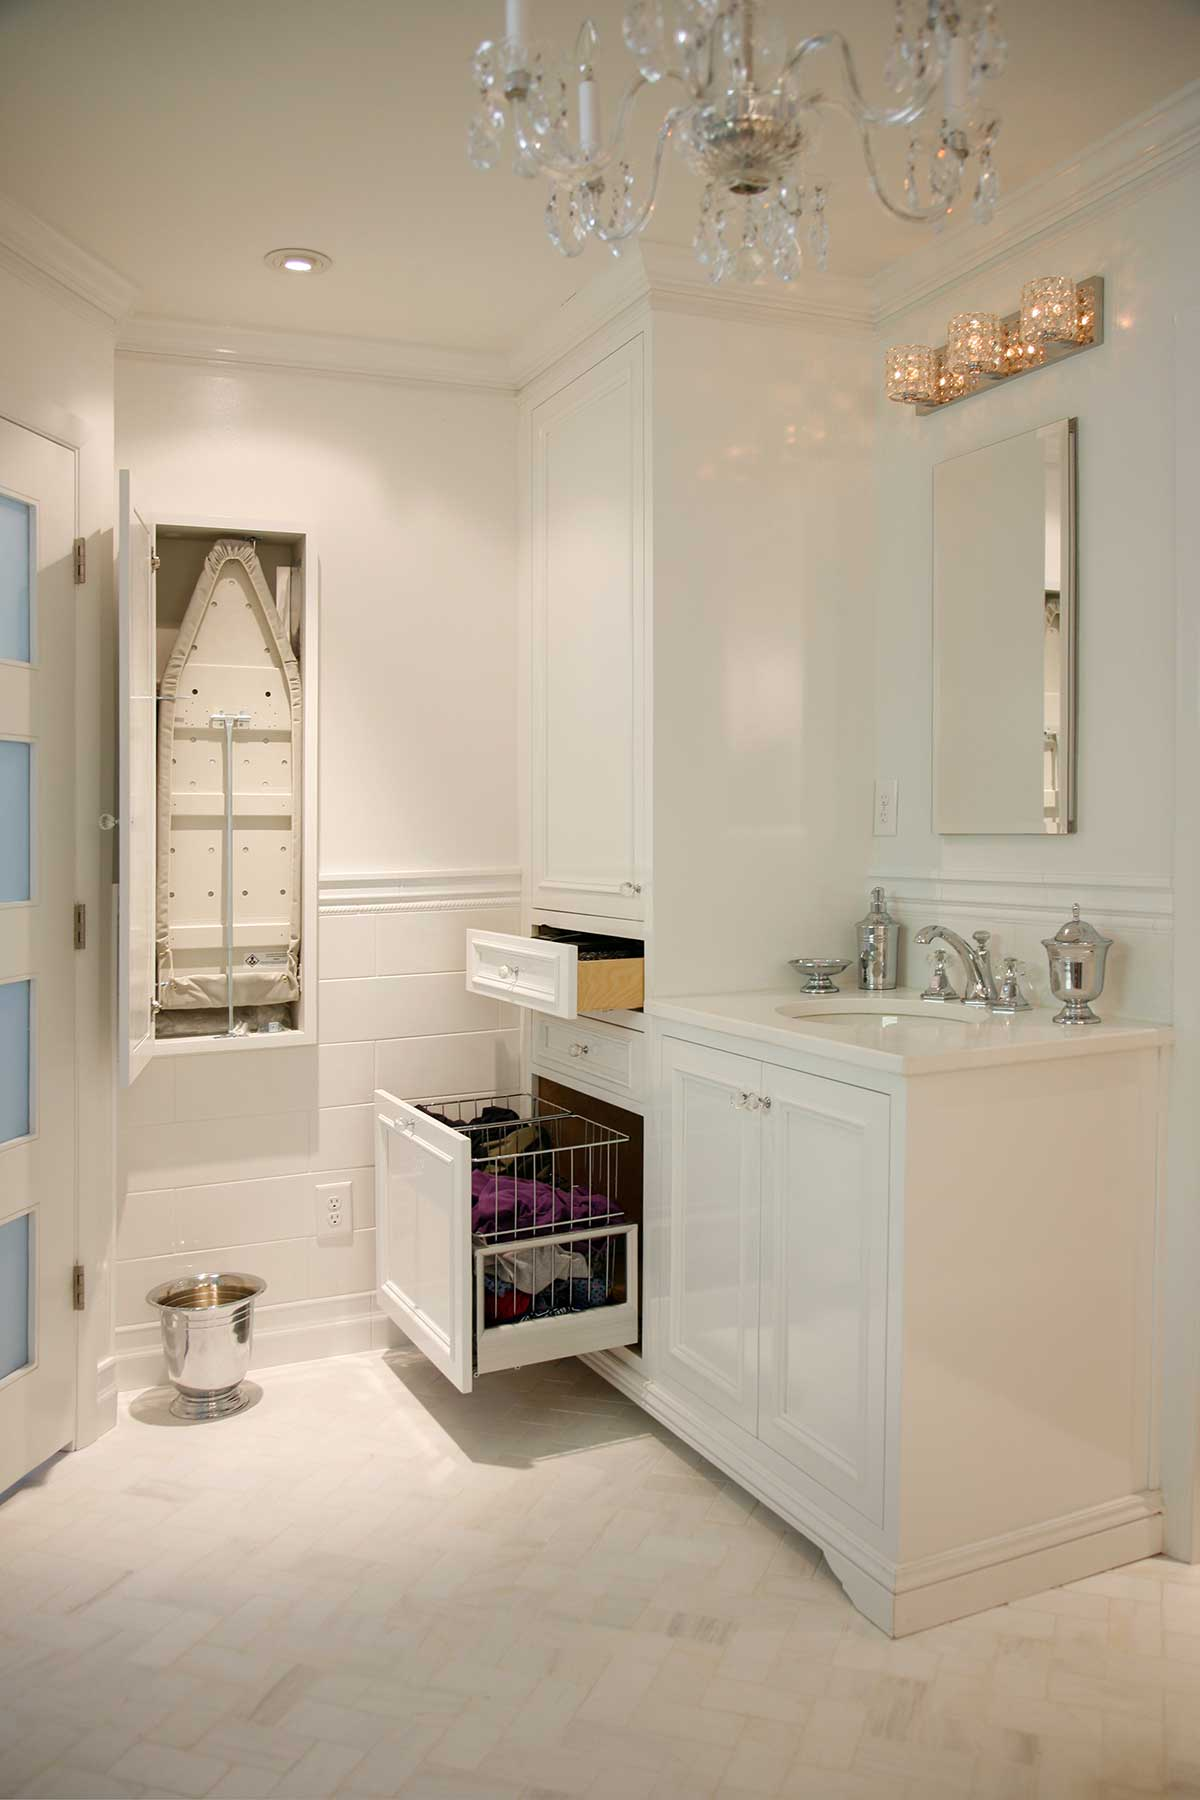 Pull-out drawers in vanity